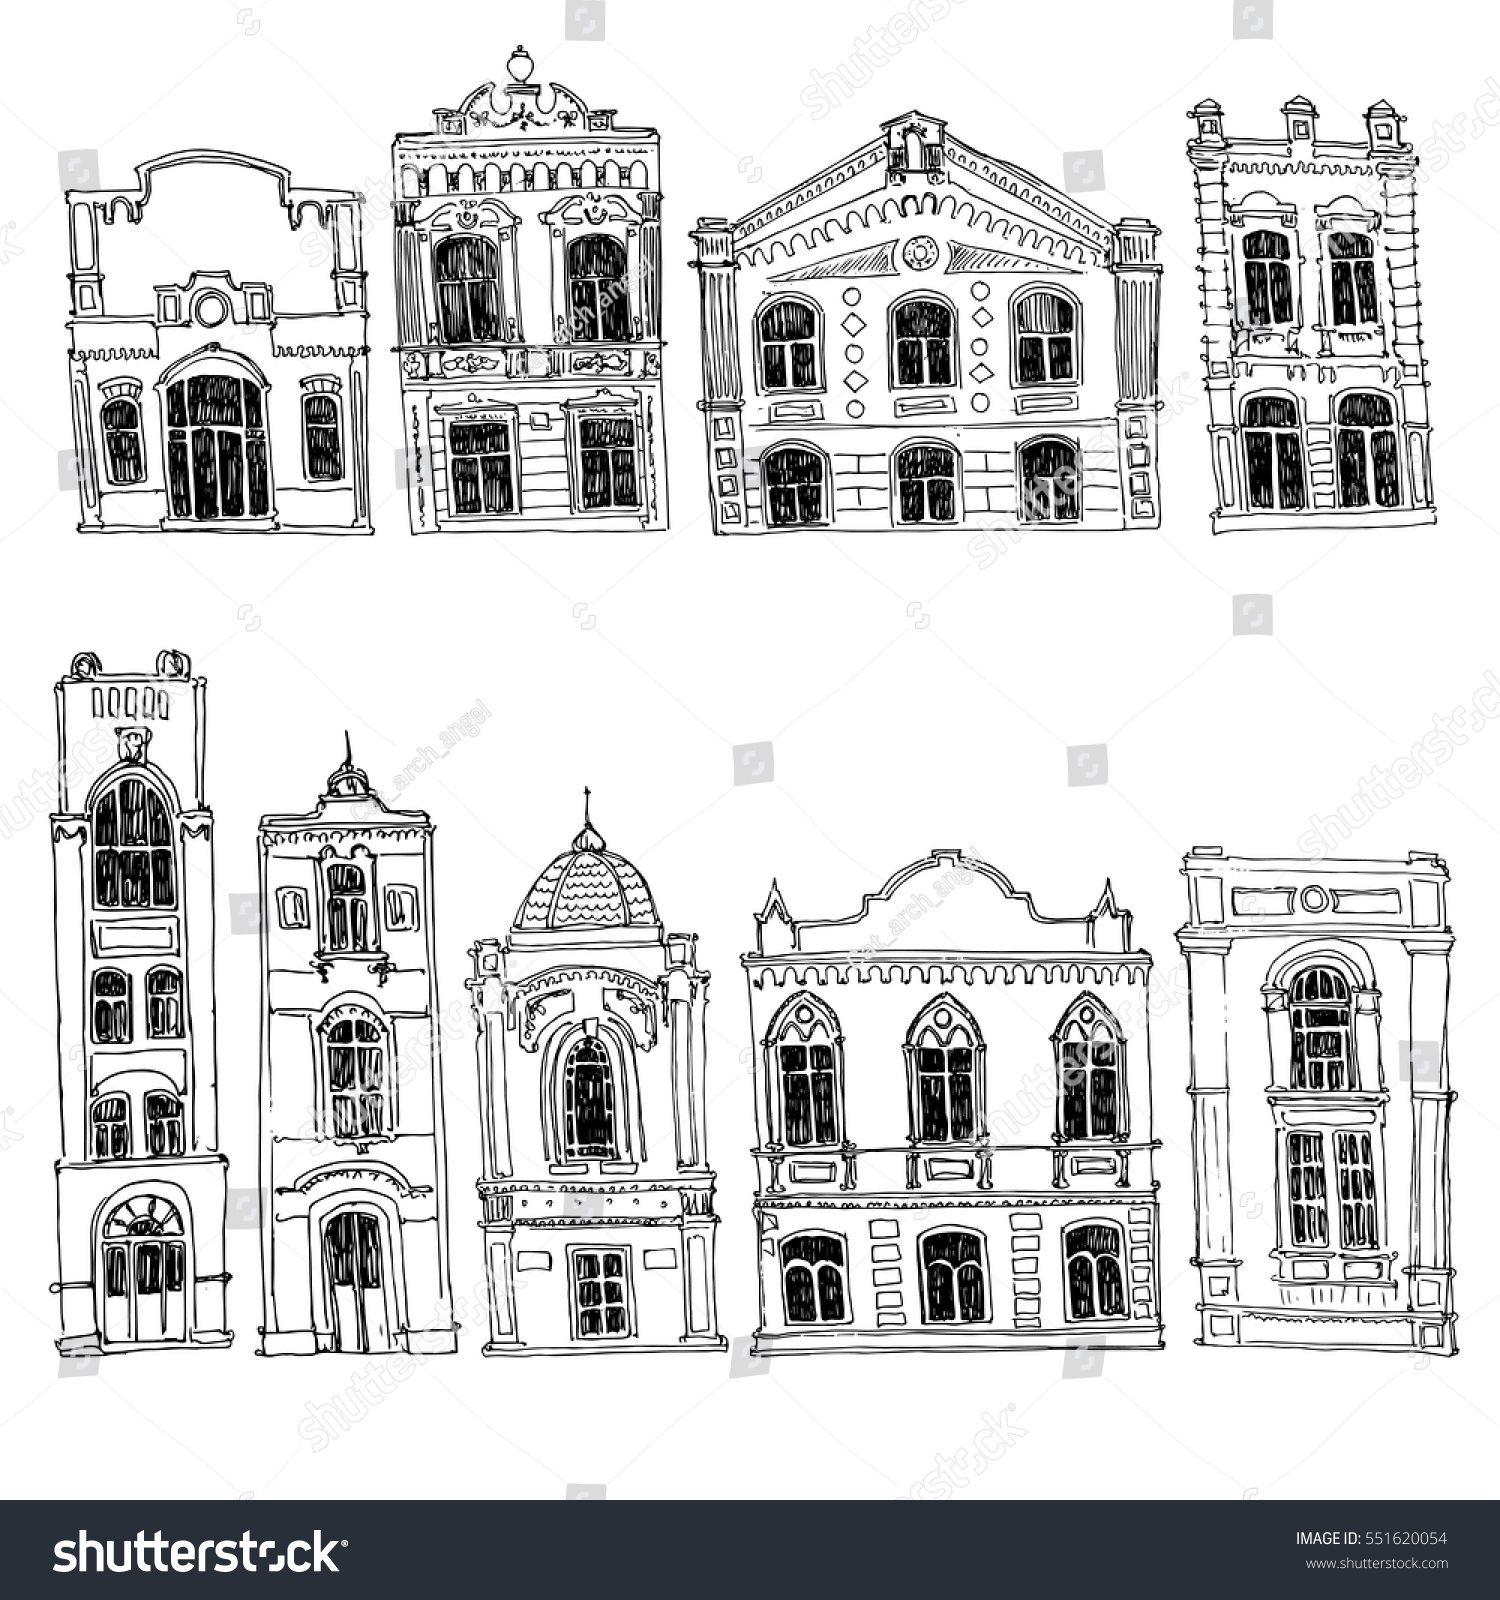 Vector Set Of Different Houses Line Drawing Mansions Sketch Buildings Urban Elements